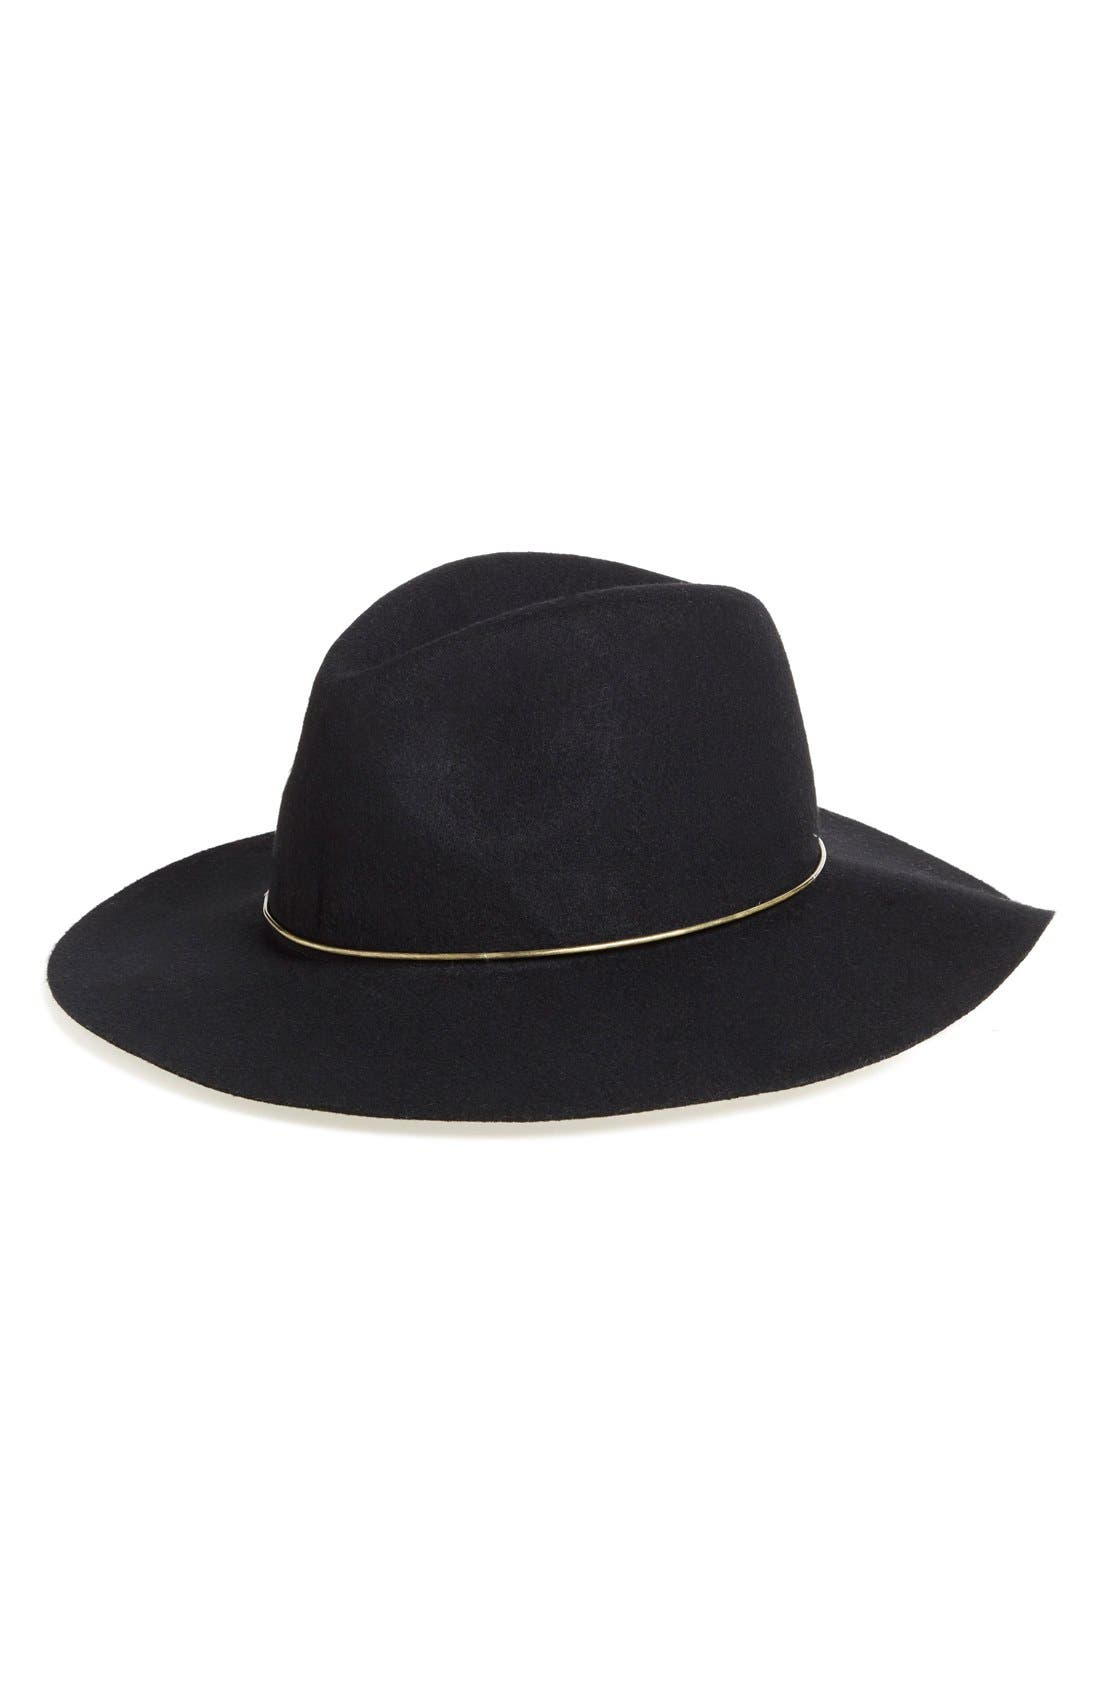 Main Image - BP. Metal Band Wide Brim Felted Wool Fedora